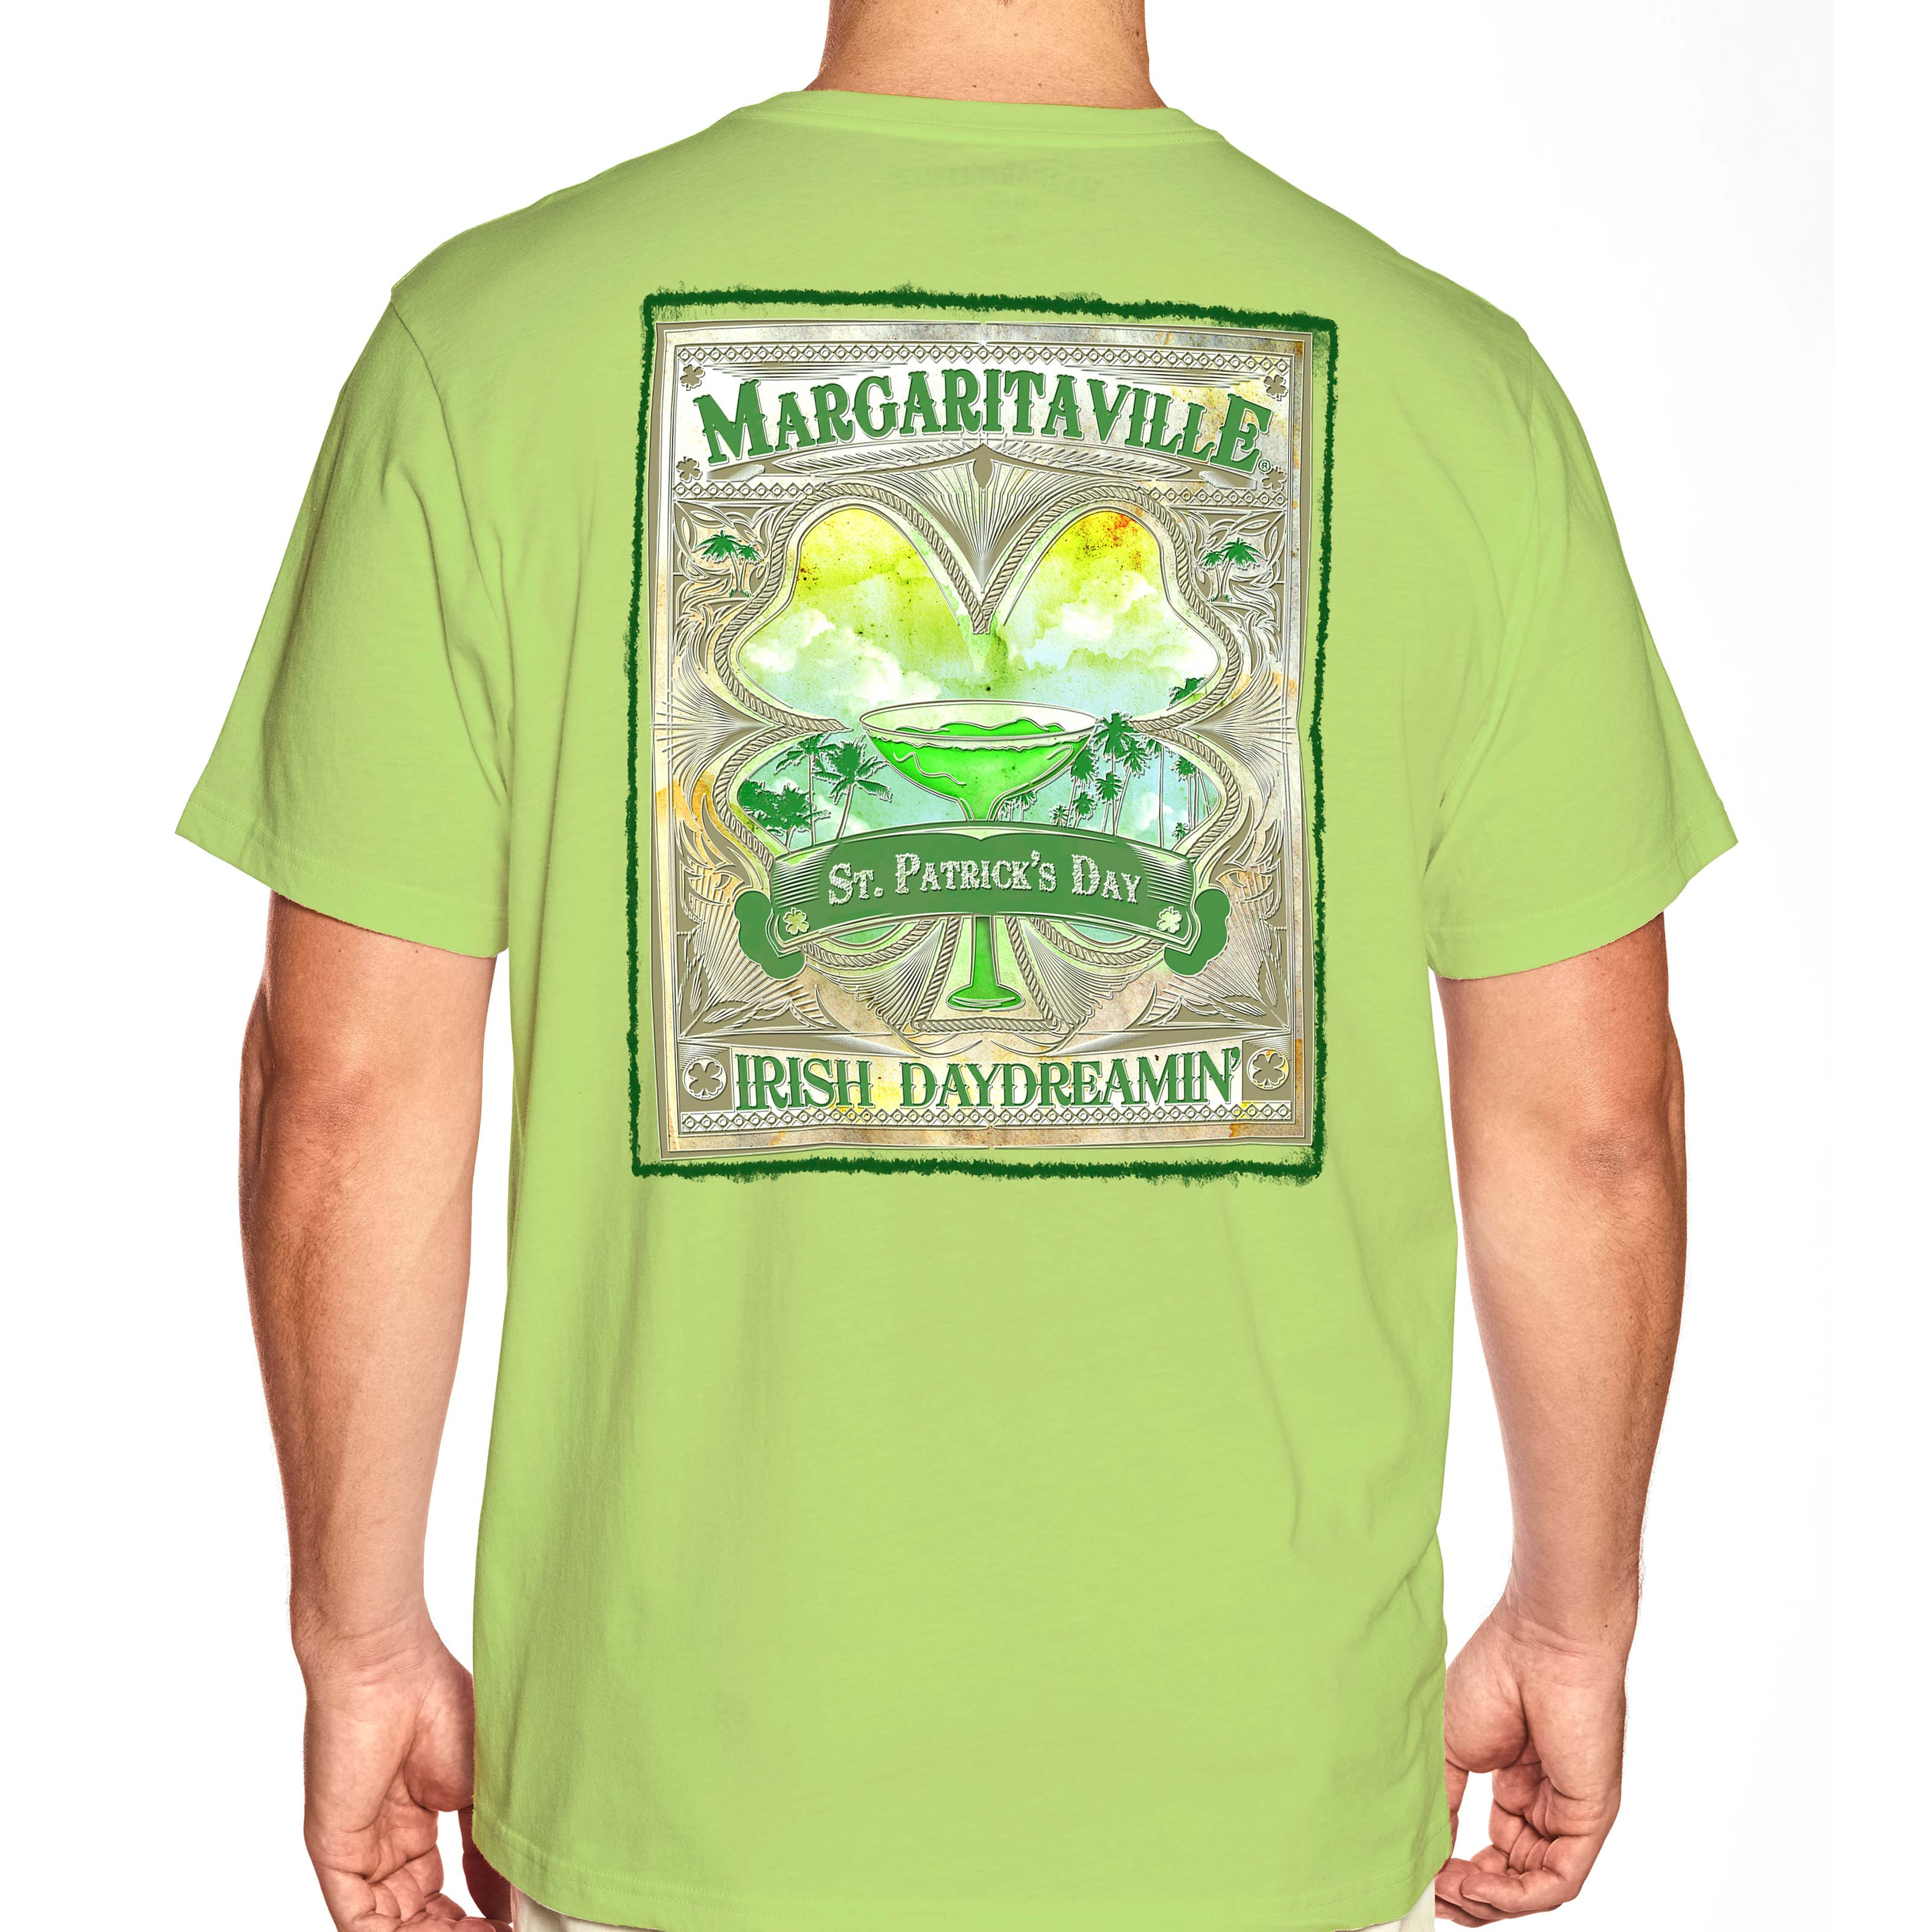 58cf29bf0 2018 ST. PATRICK'S DAY TSHIRT - Margaritaville Apparel Store